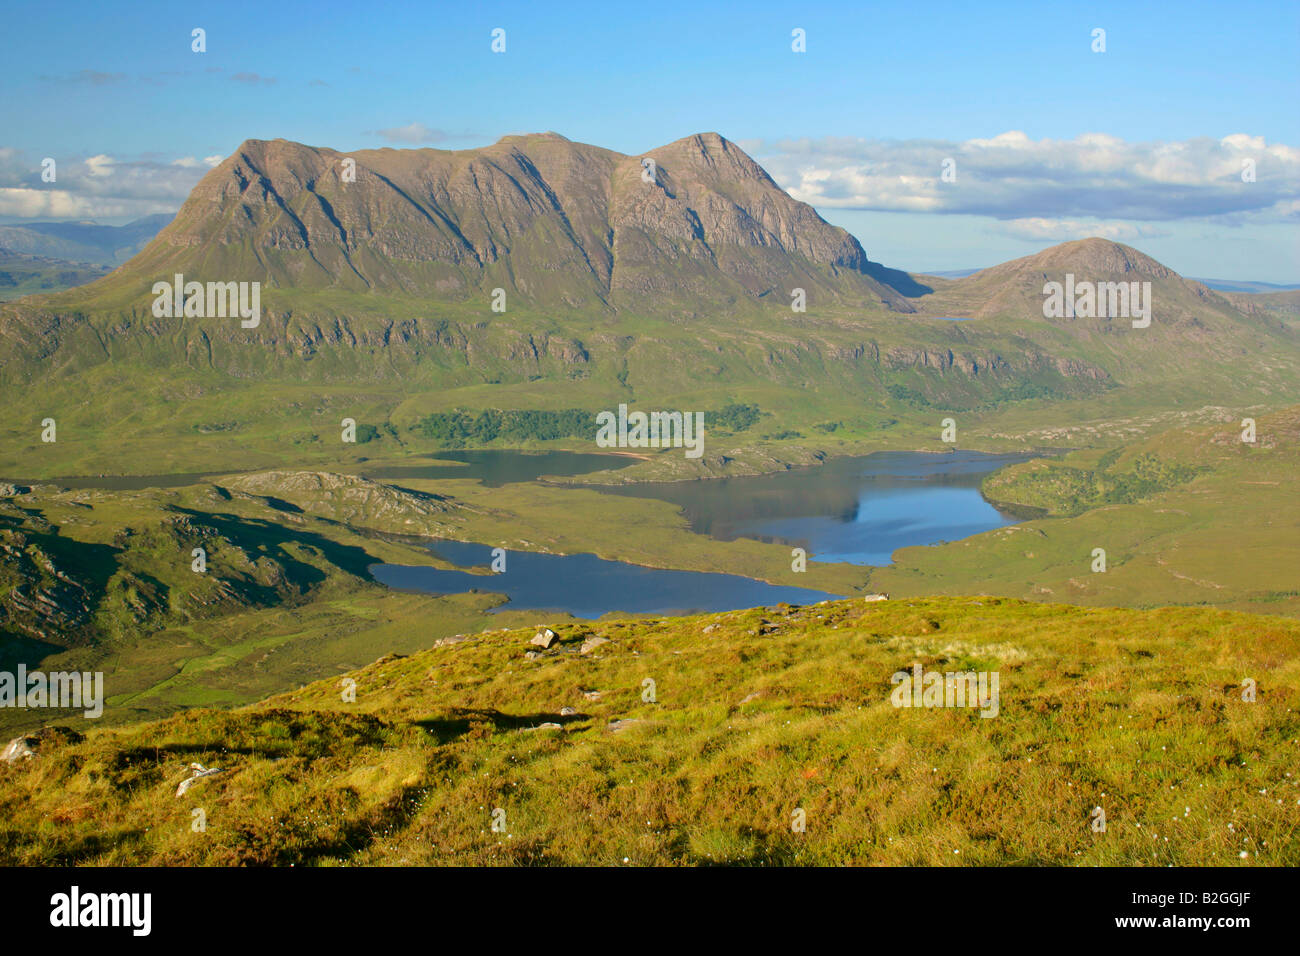 panoramic view lakelands lake landscape Inverpolly Nature Reserve Stac Pollaidh highlands Wester Ross Highlands Stock Photo